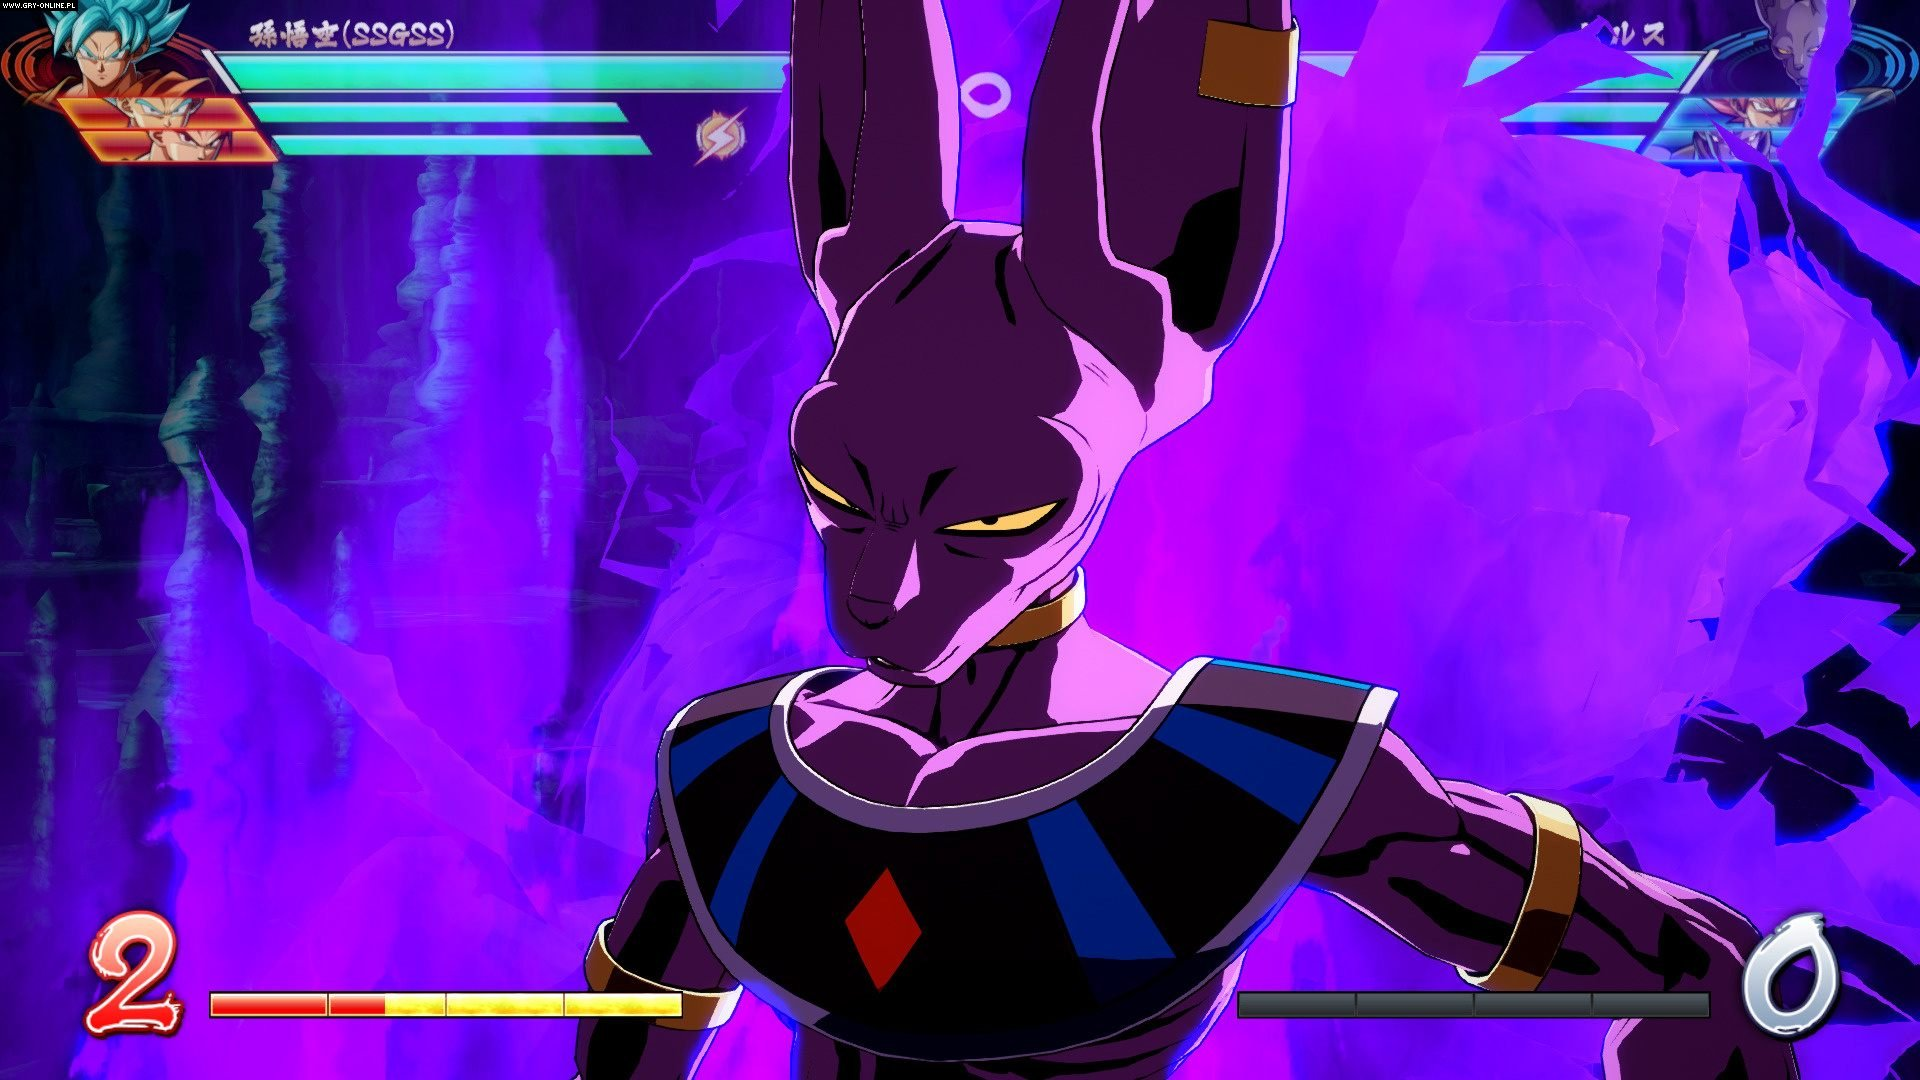 Dragon Ball FighterZ PC, PS4, XONE, Switch Gry Screen 117/230, Arc System Works, Bandai Namco Entertainment